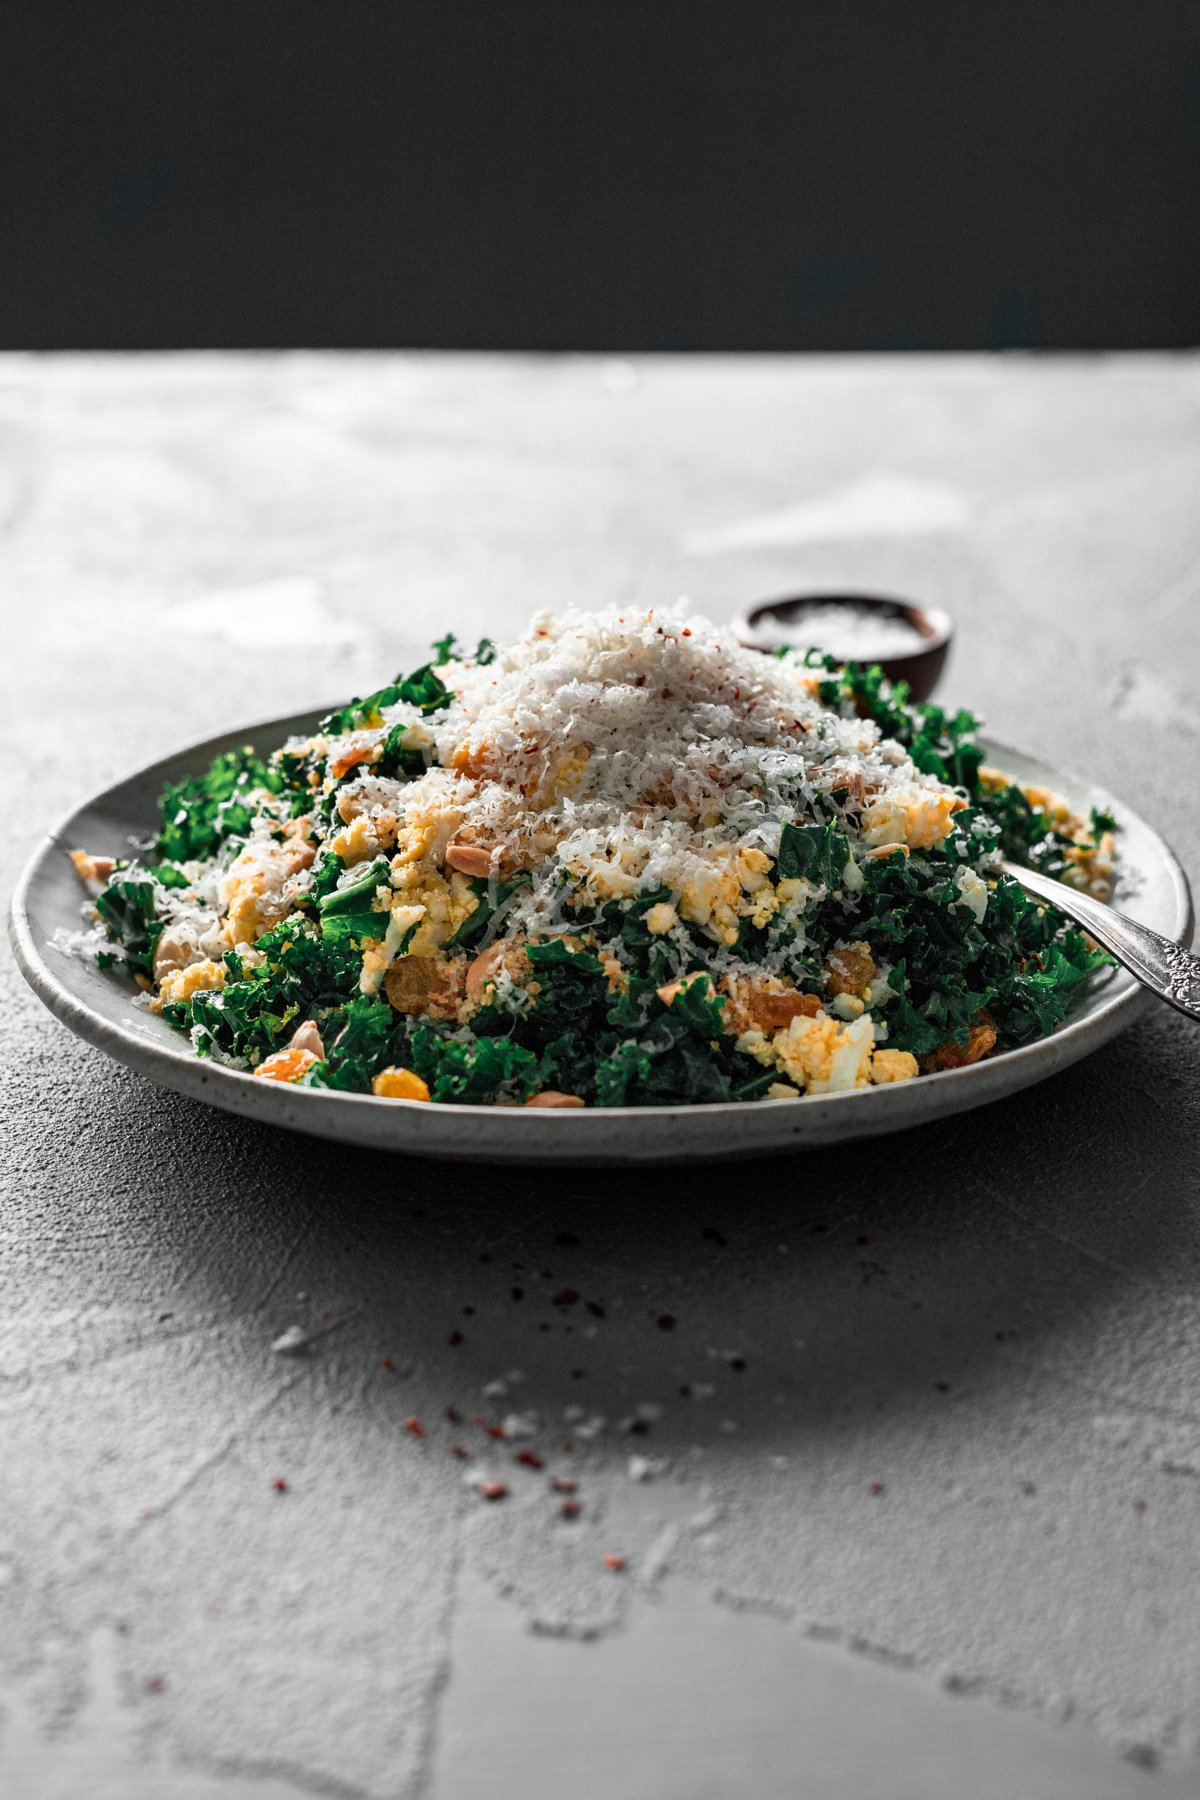 backlit plate of easy kale salad recipe with marcona almonds, manchego, and aleppo pepper